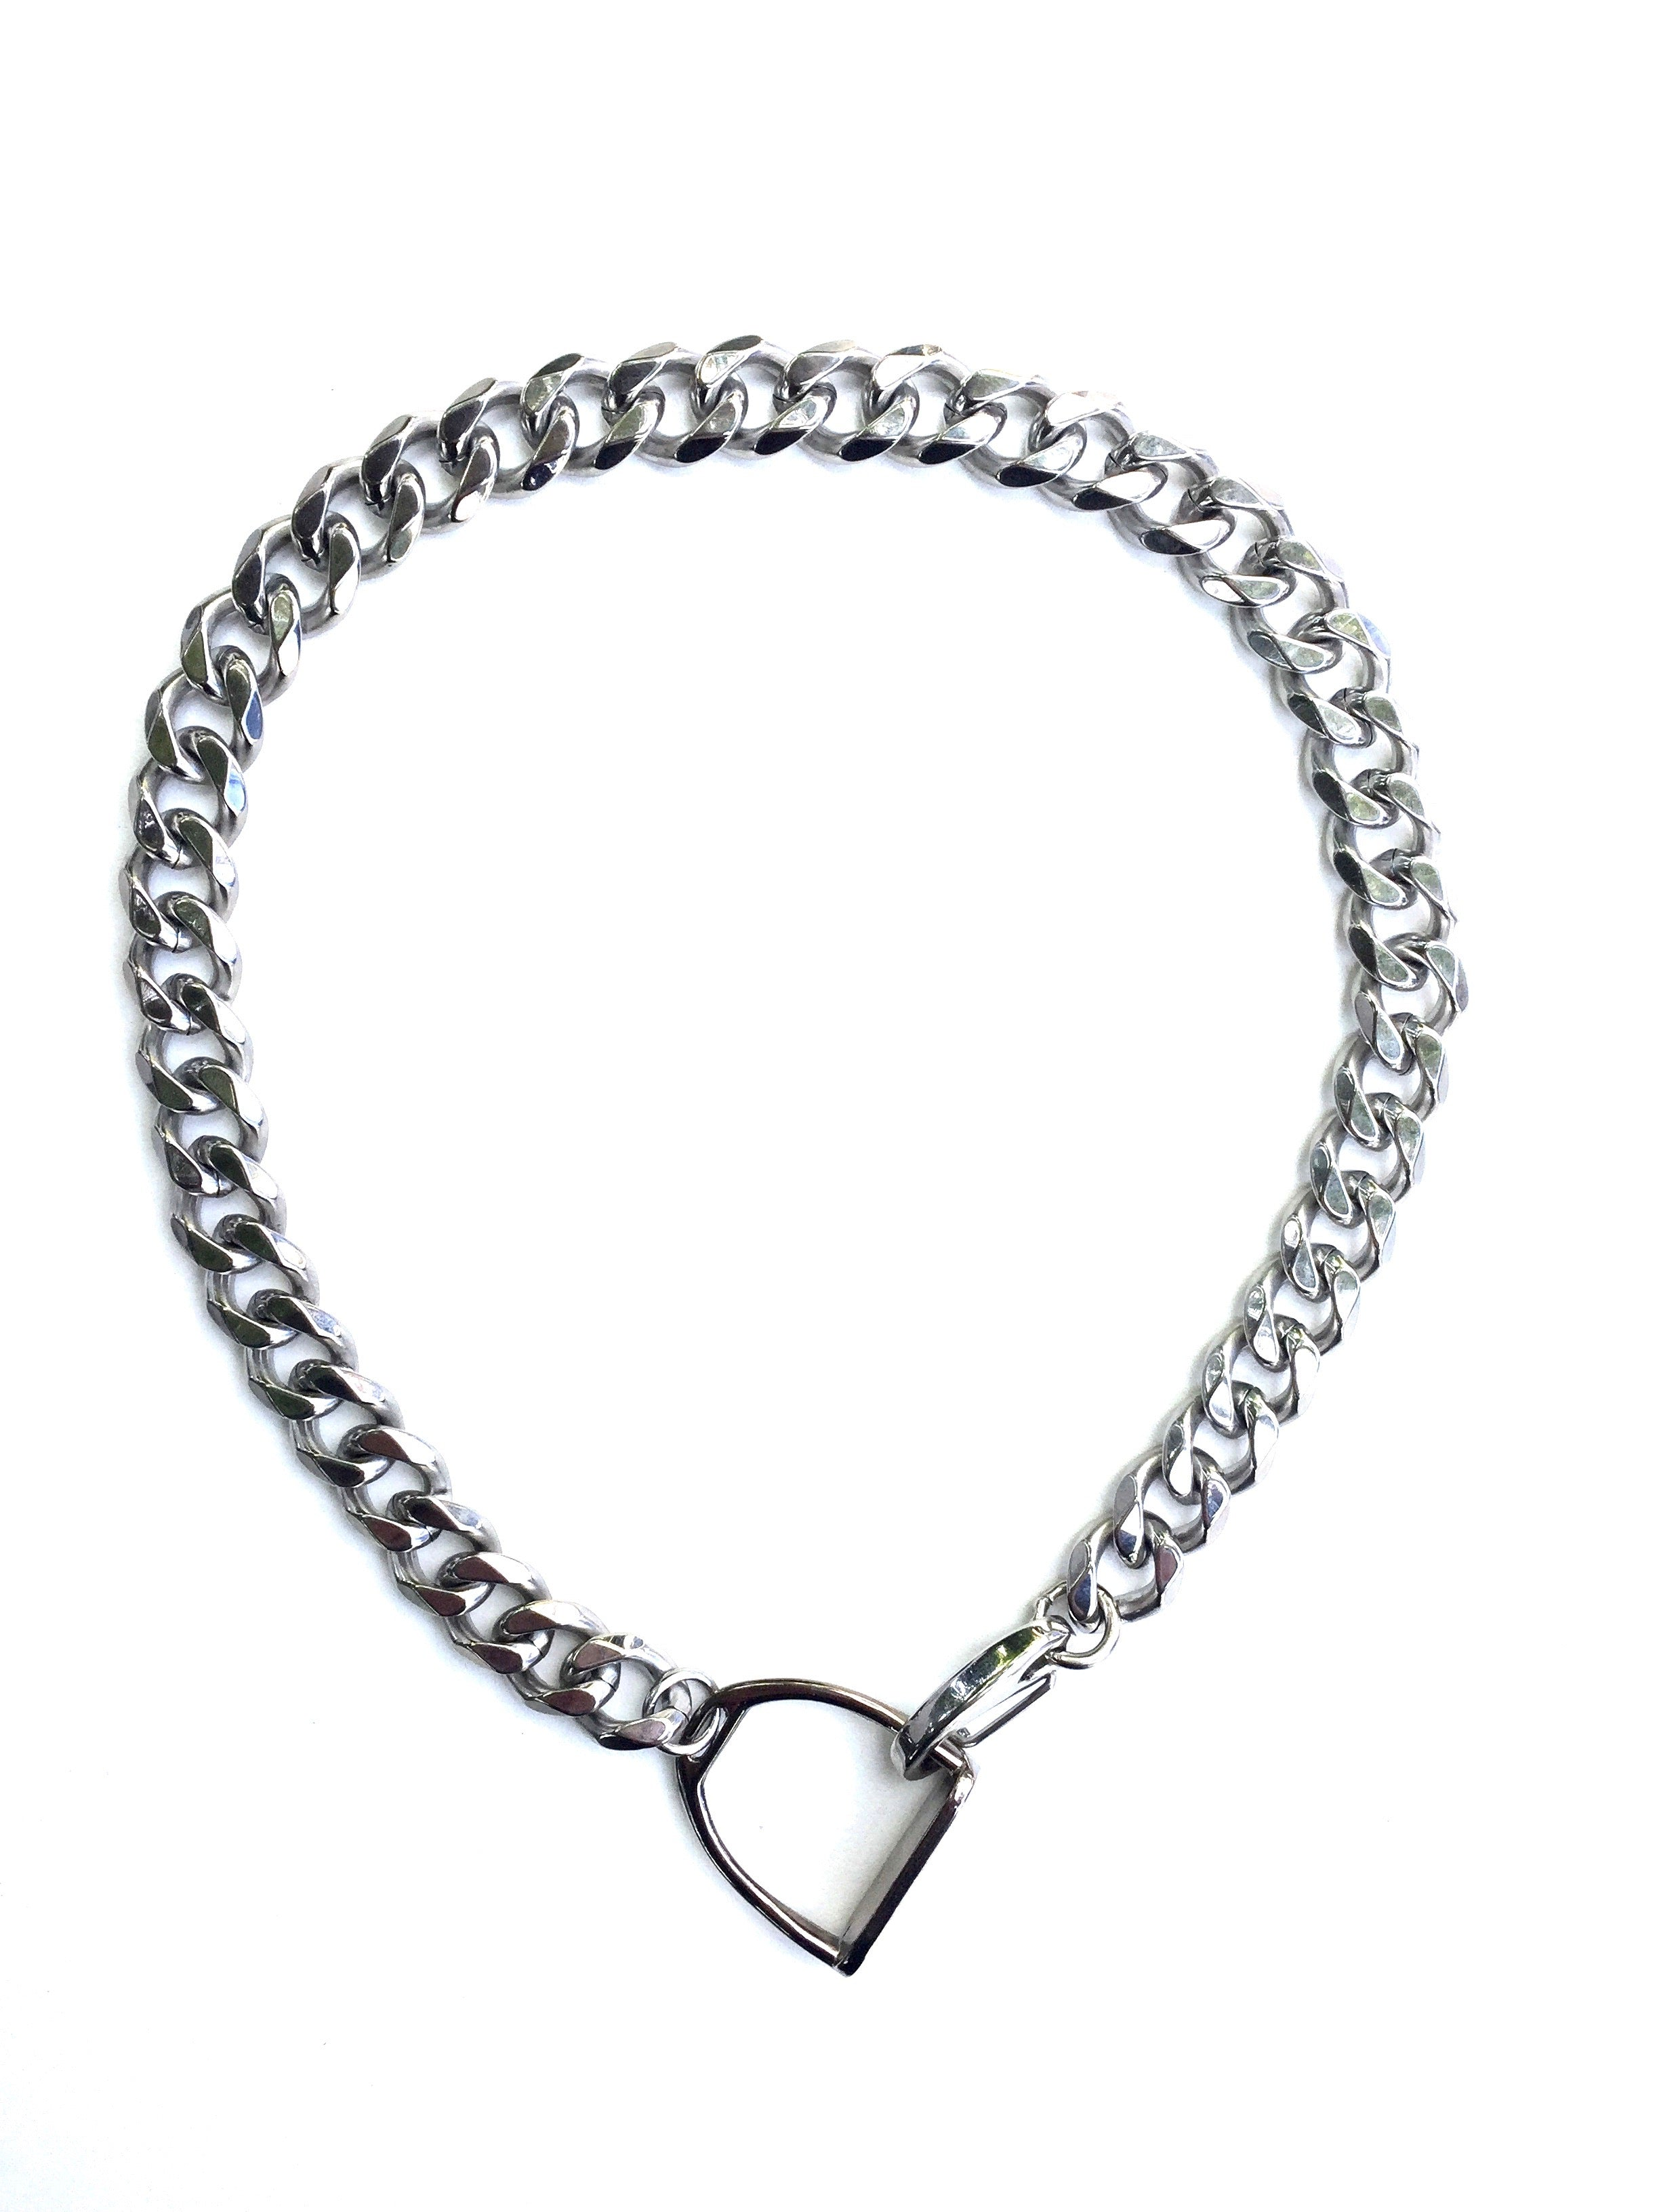 STIRRUP CURB CHAIN NECKLACE | Equestrian Jewerly | Stirrup Necklace | Equestrian Gifts - AtelierCG™